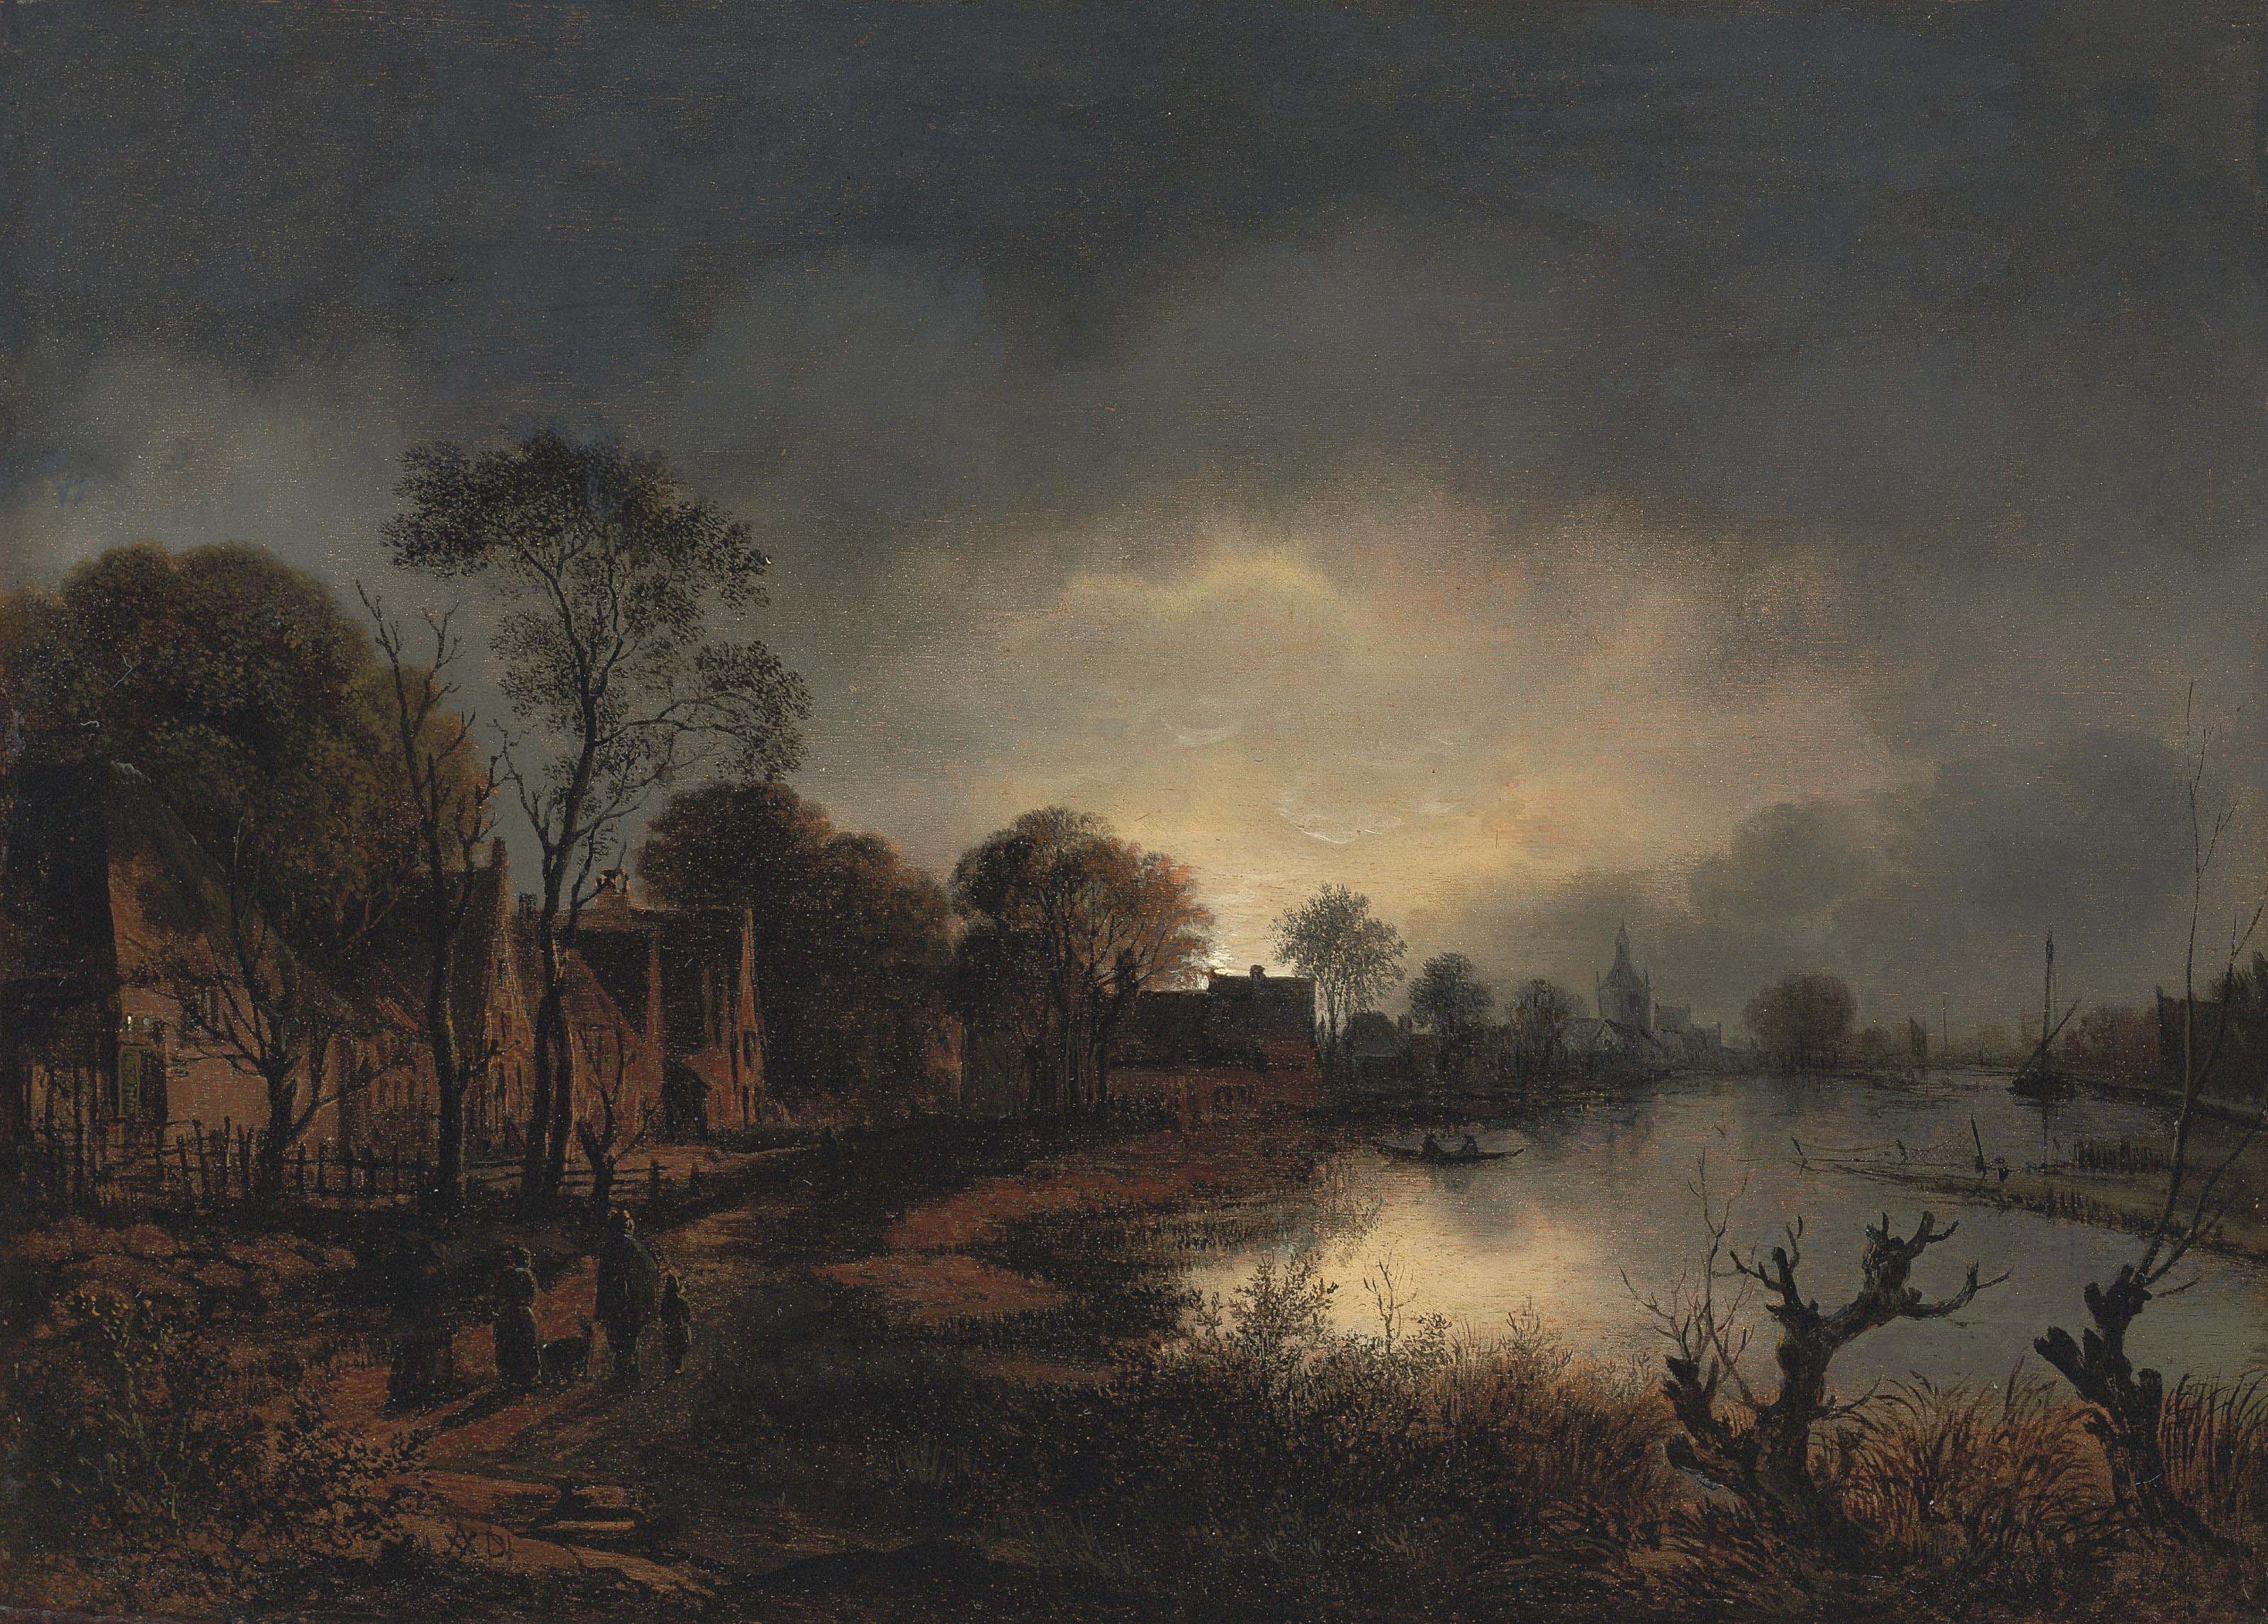 A river landscape at dusk with figures walking along a path, a church in the distance